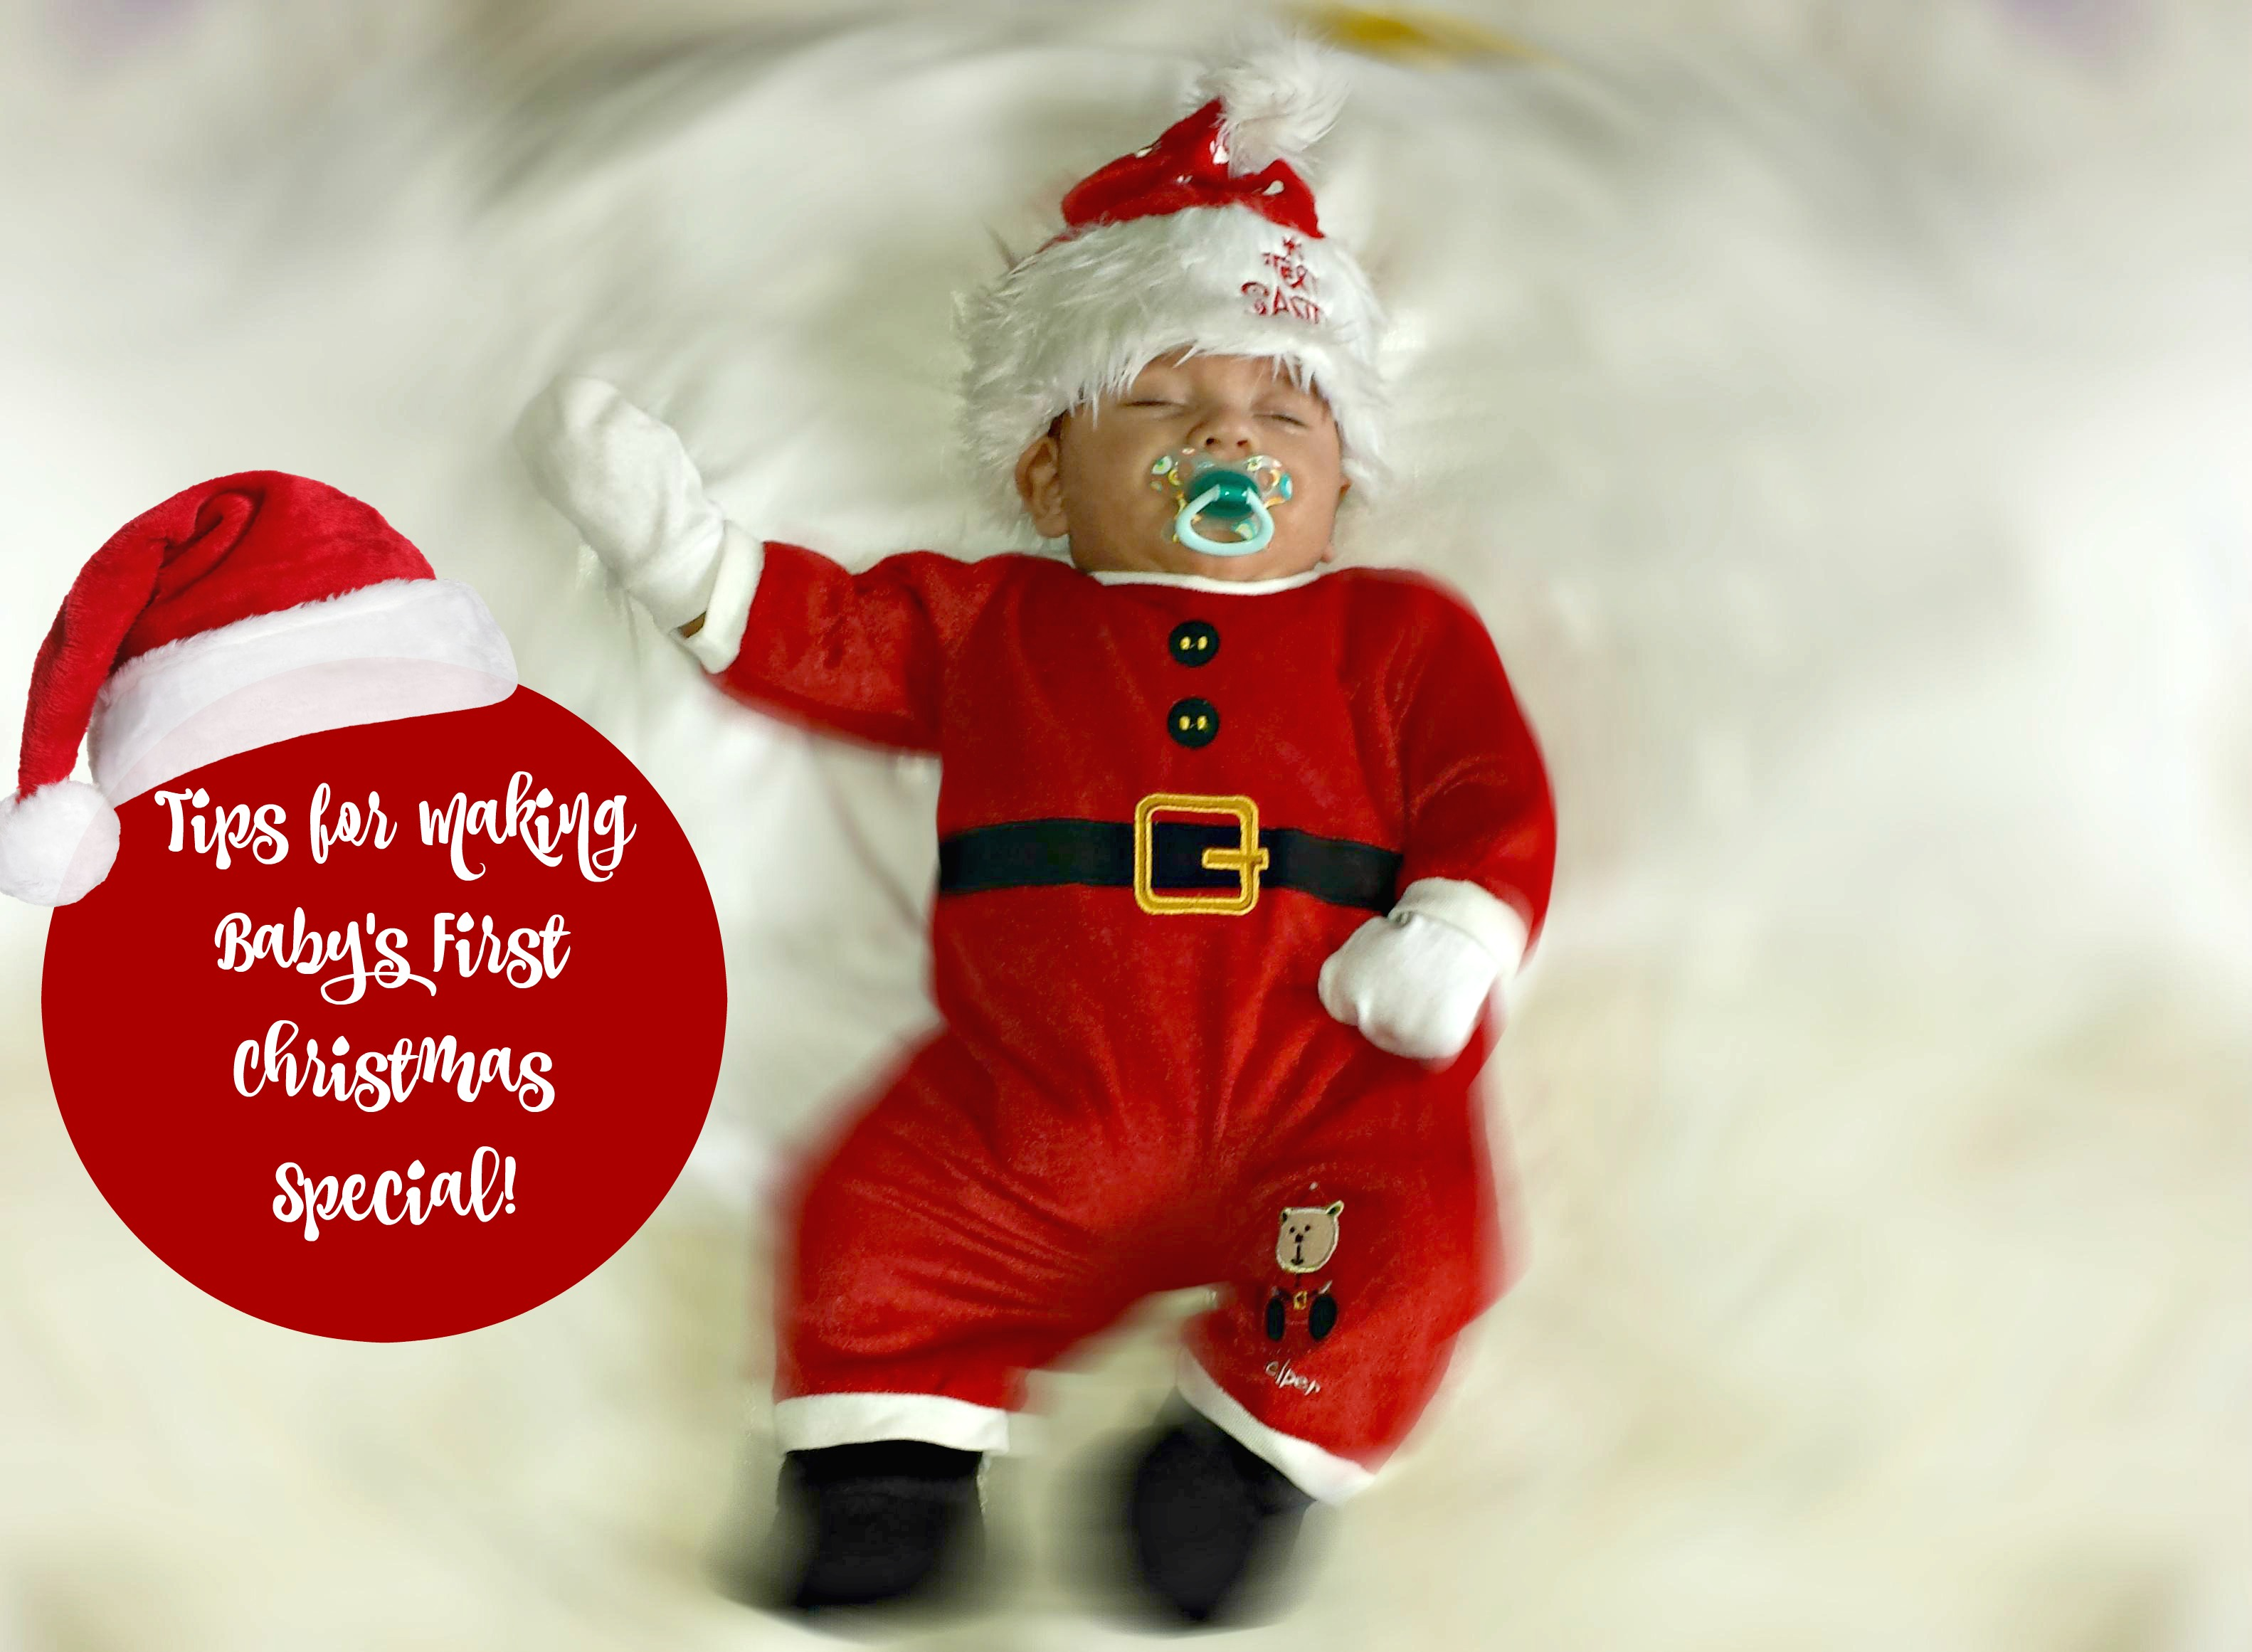 Tips for Making Baby's 1st Christmas Special